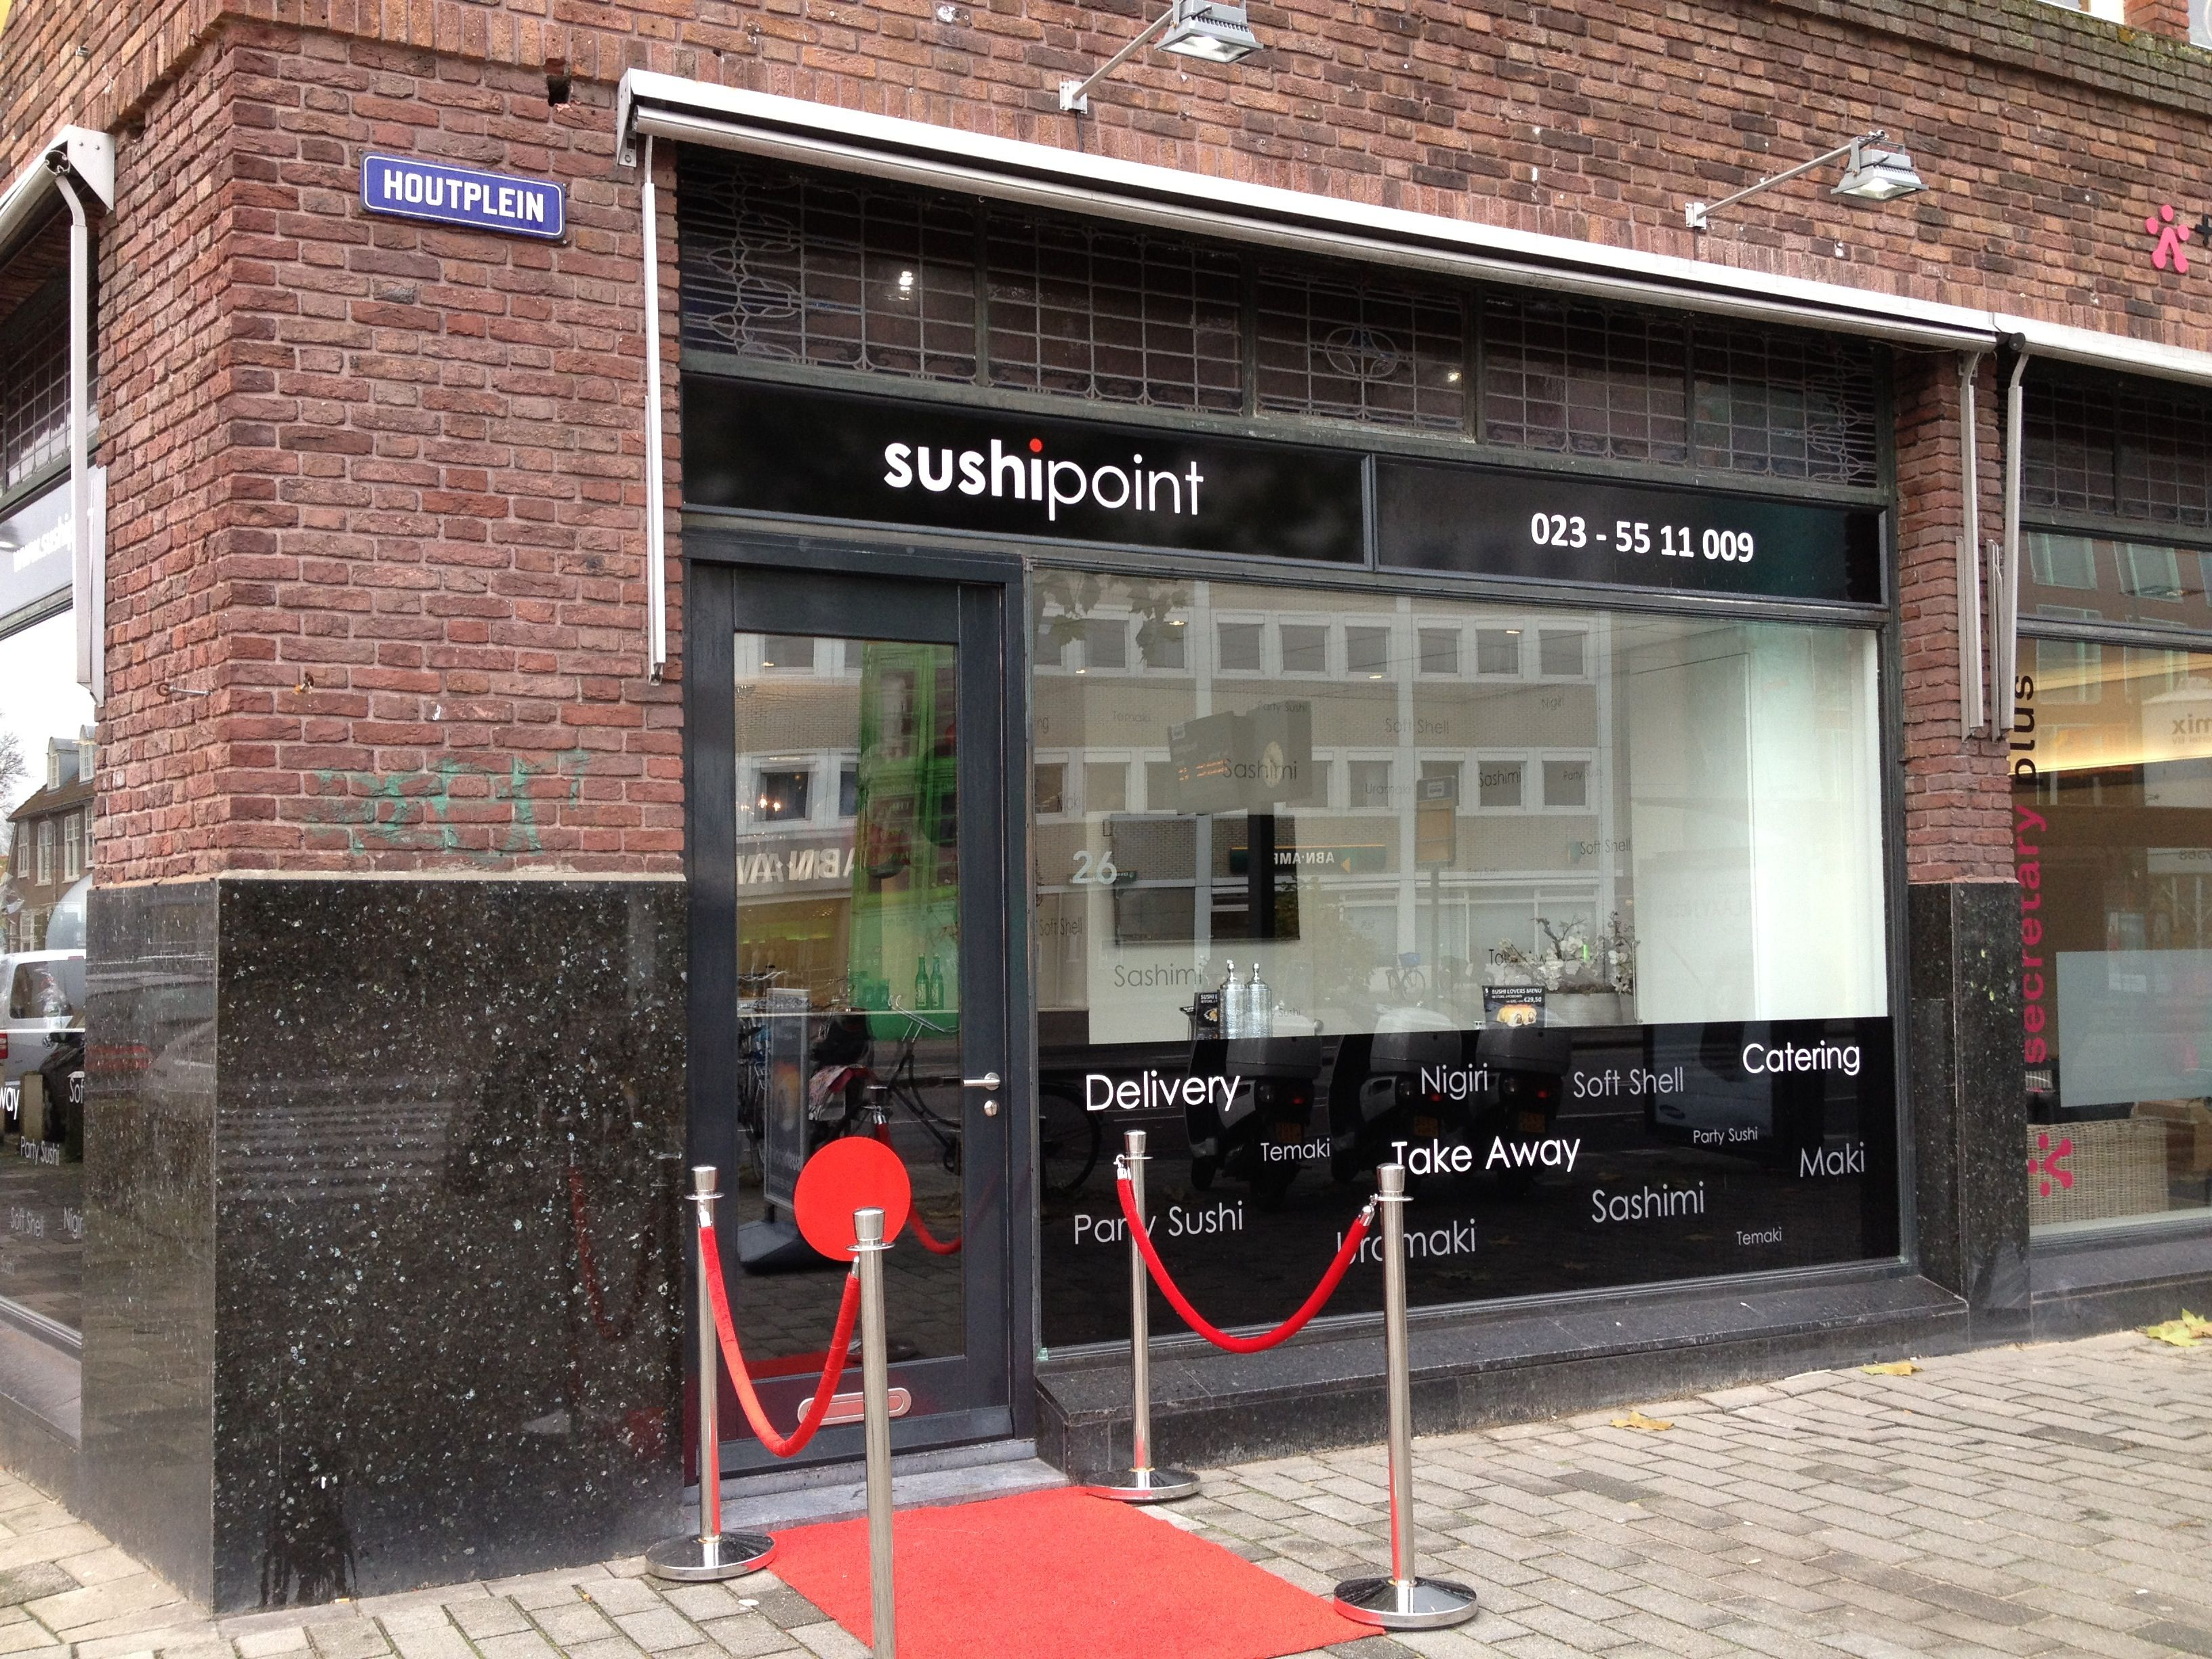 Haarlem Sushi Yeah Another New Sushi Takeaway In Haarlem Houtplein Hester